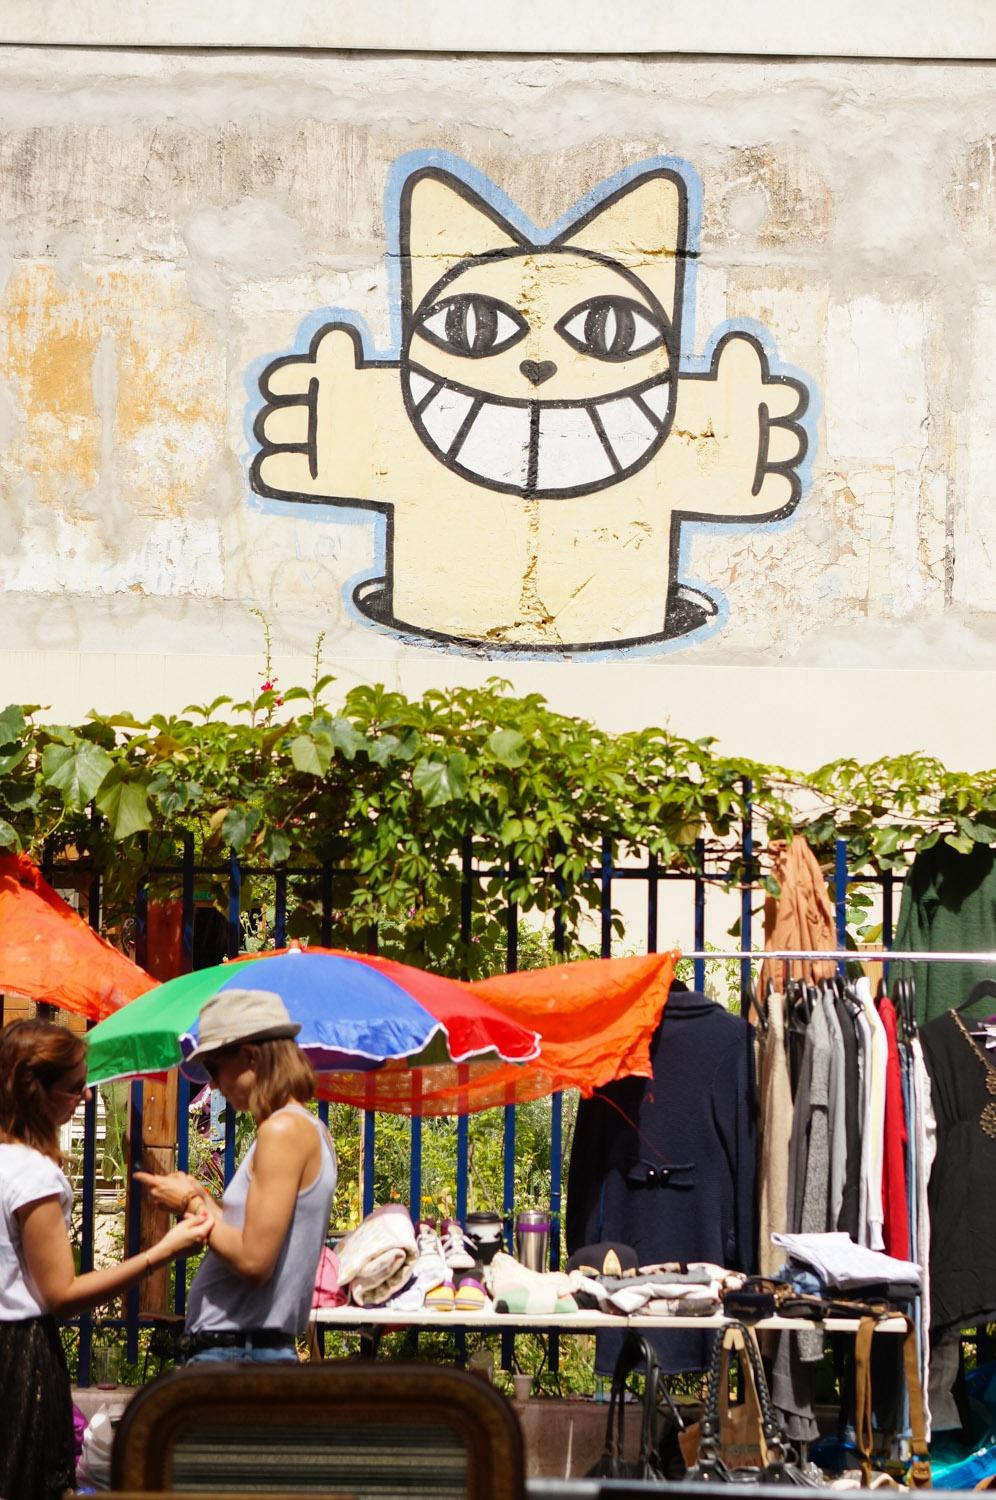 le chat, street art monsieur le chat, monsieur le chat, urban art paris, art urbain paris, paris street art, street art 75010